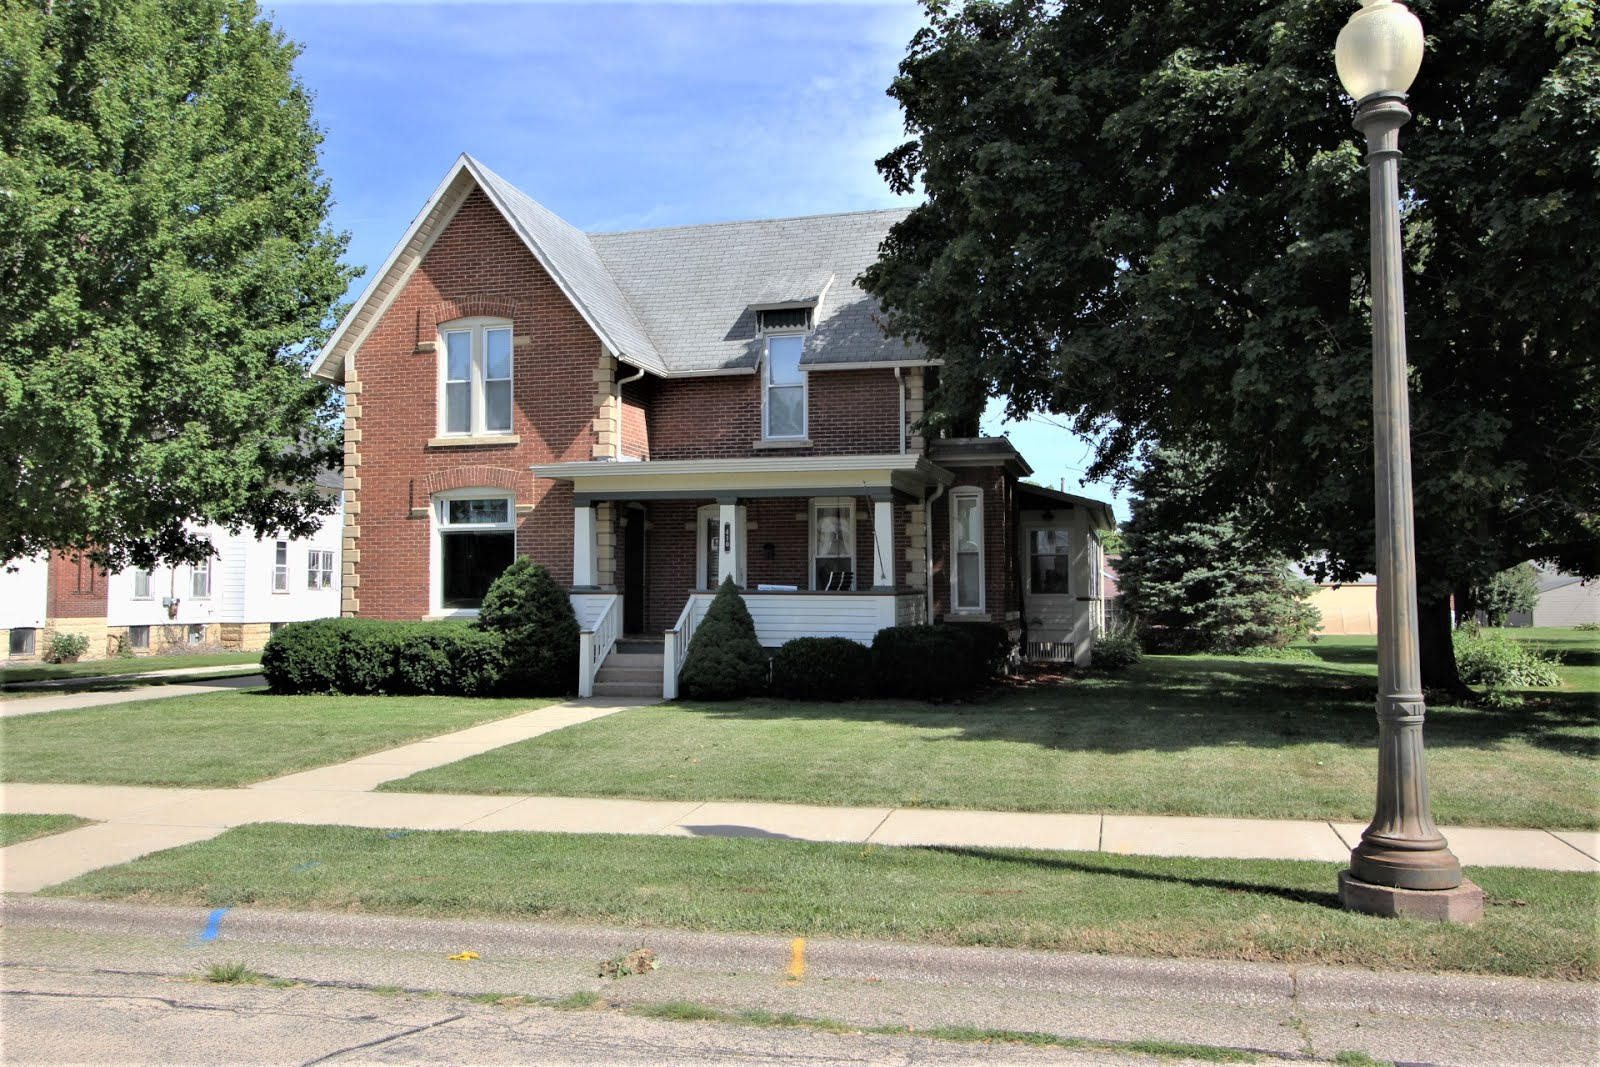 410 West Pleasant St., Maquoketa, IA $199,900